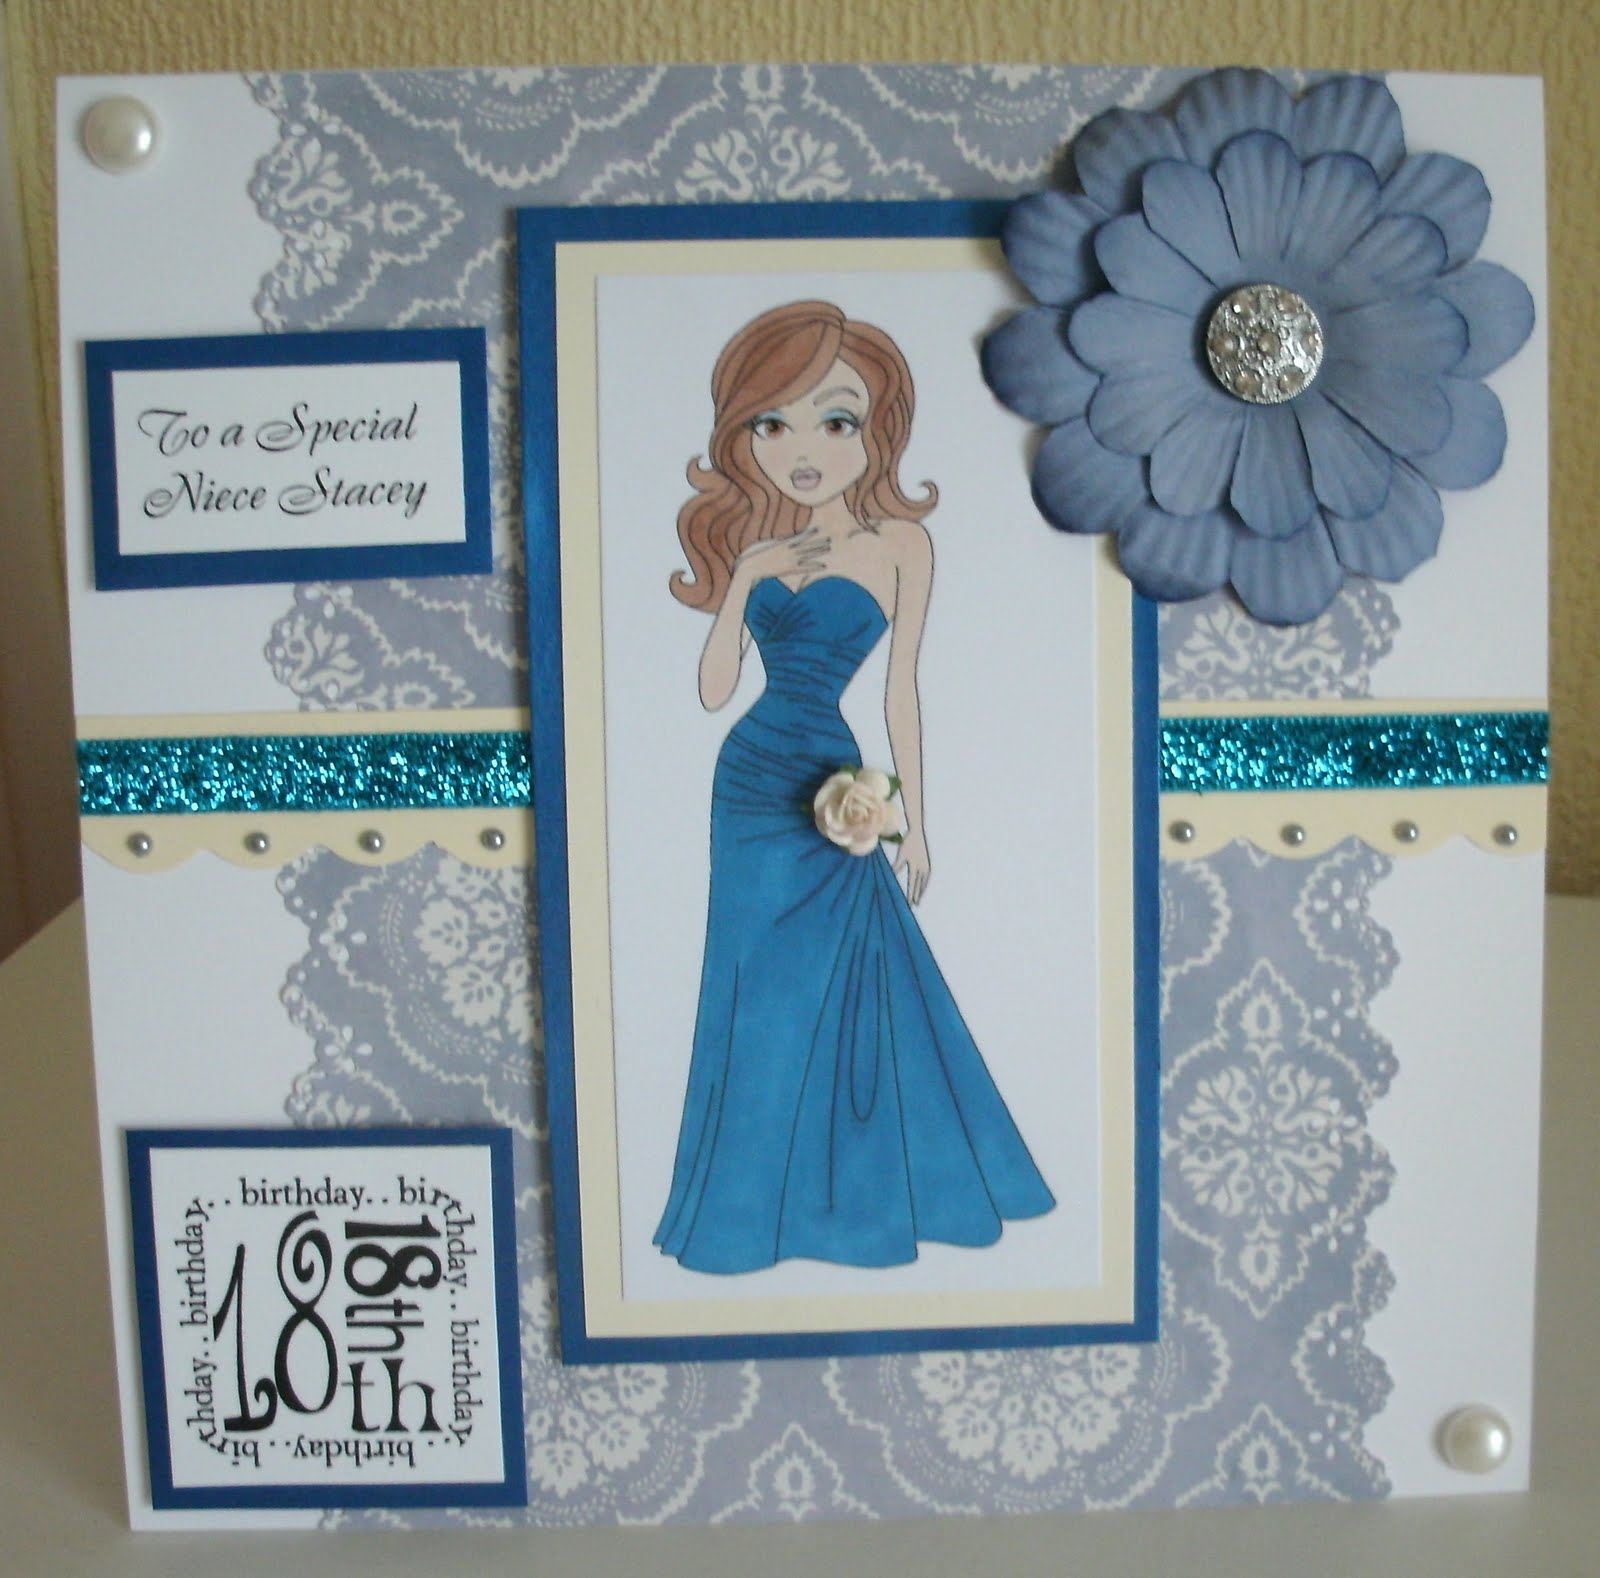 Designs By Gaynor Greaves 18th Birthday Card